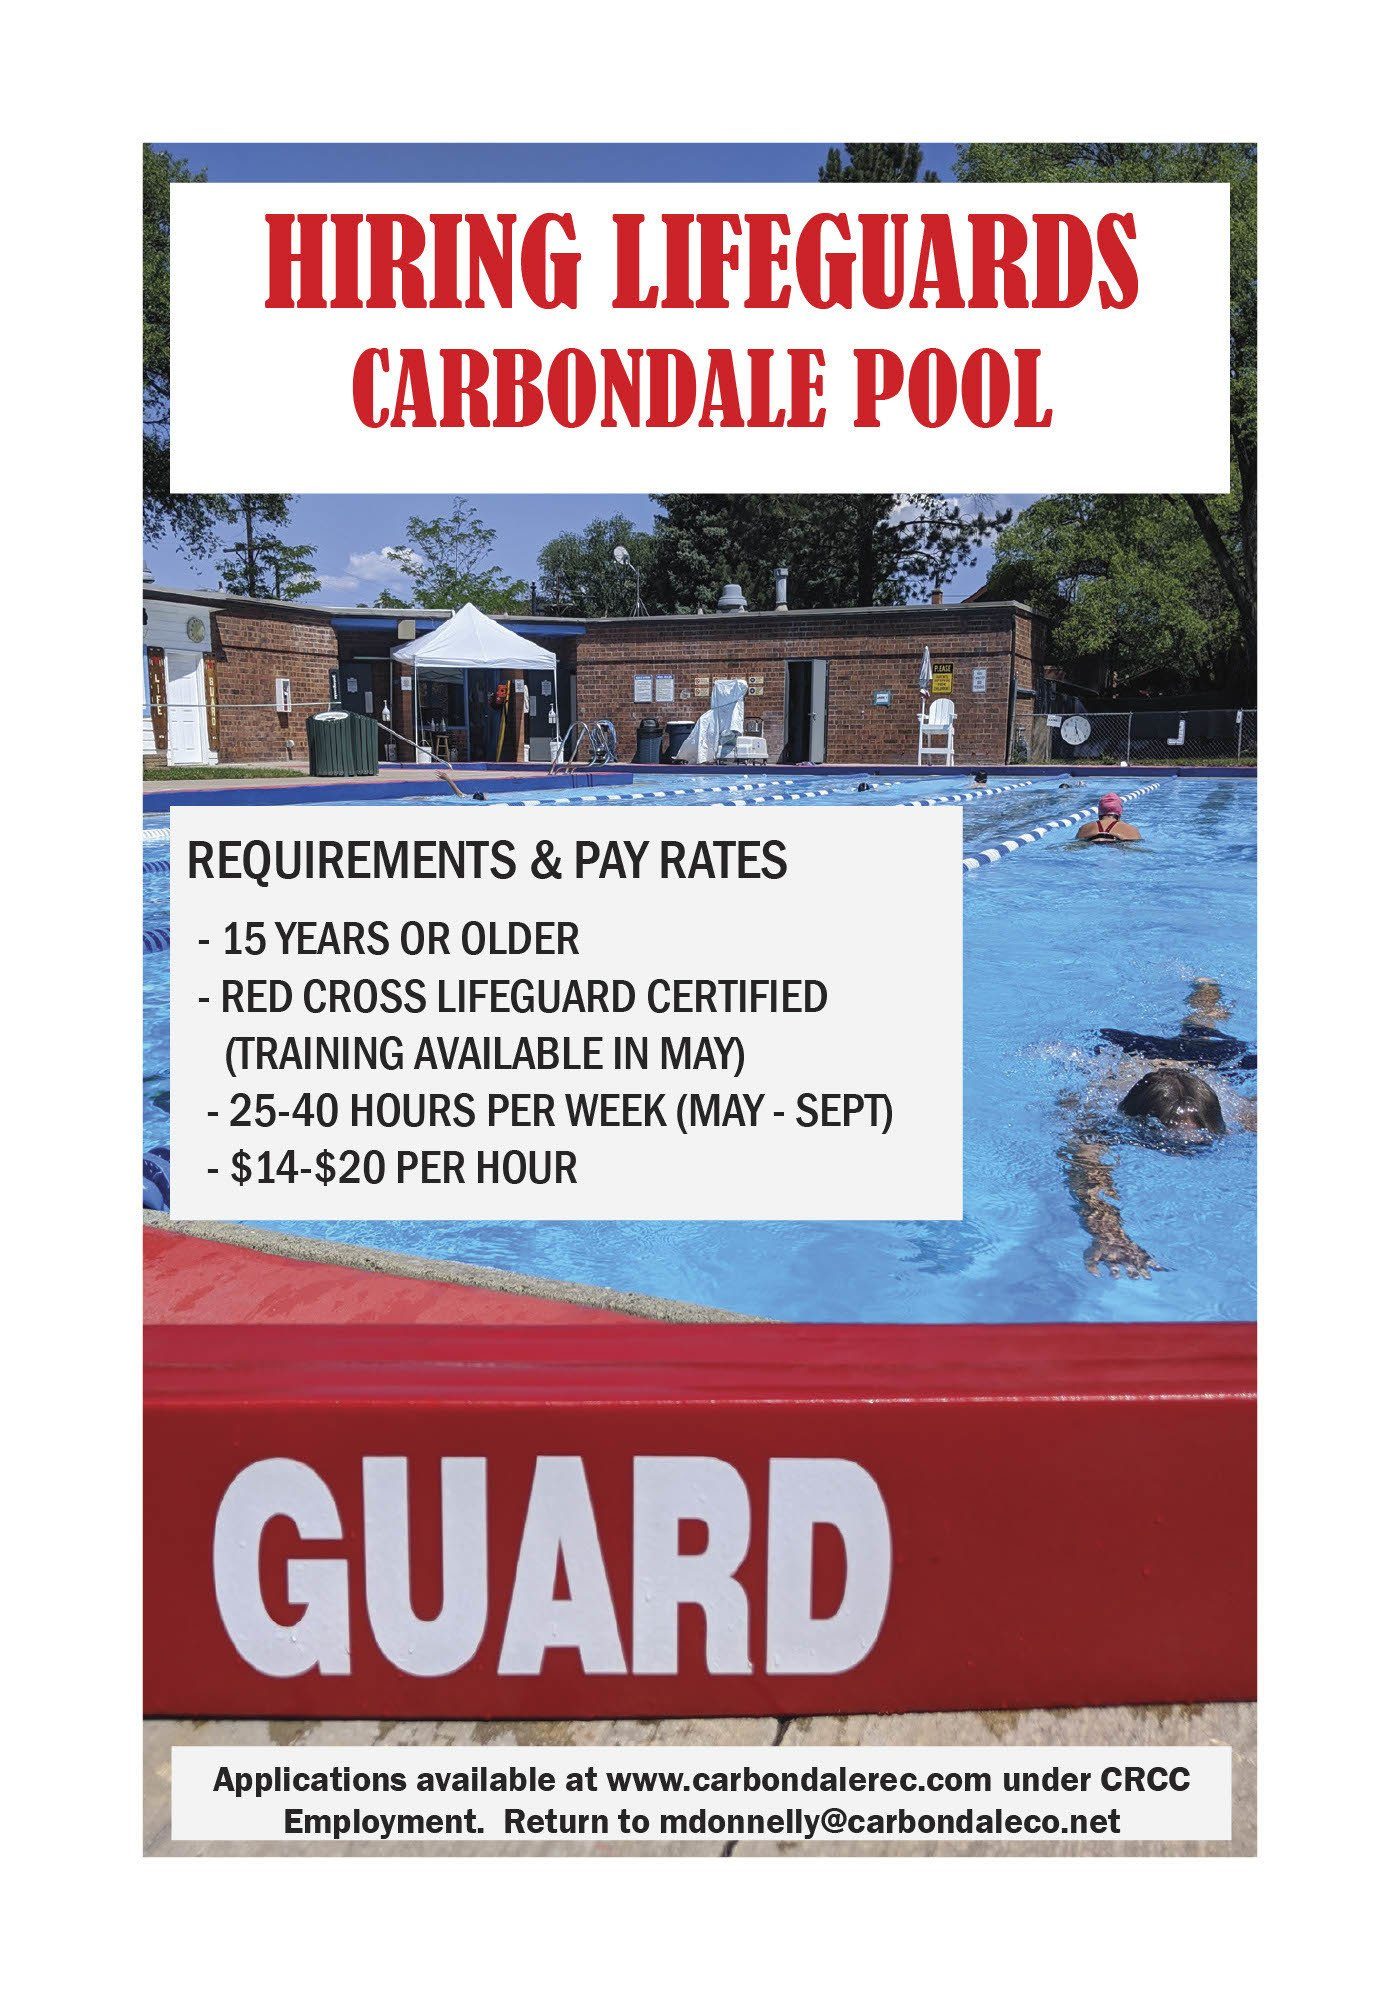 Cdale pool lifeguard thumbnail